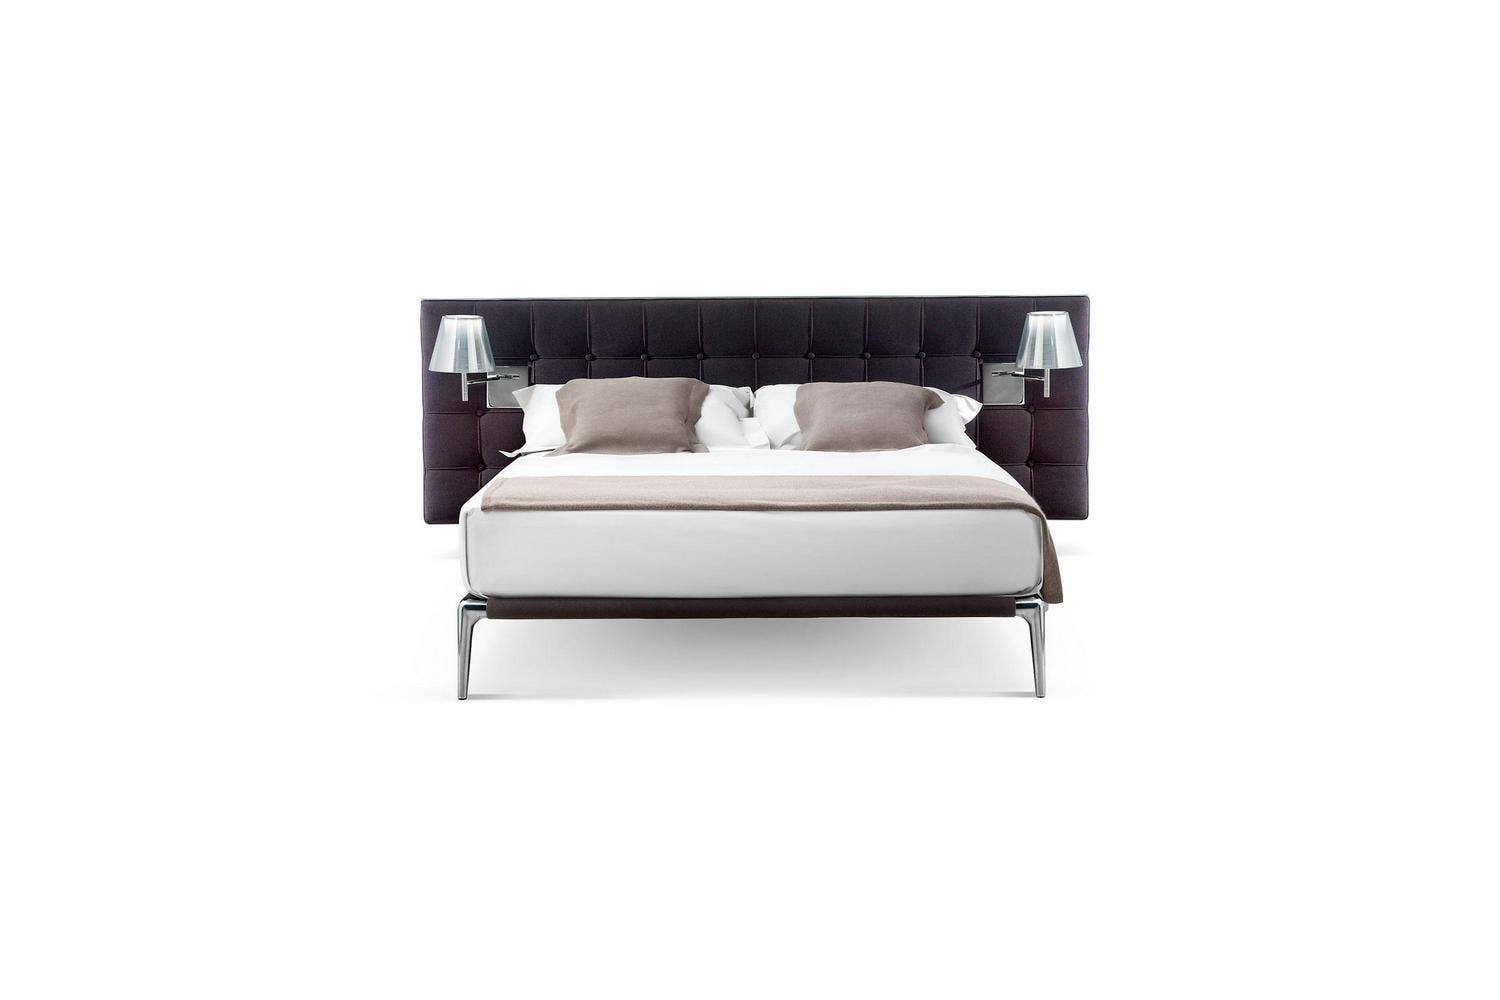 L26 L27 Volage Bed By Philippe Starck For Cassina Space